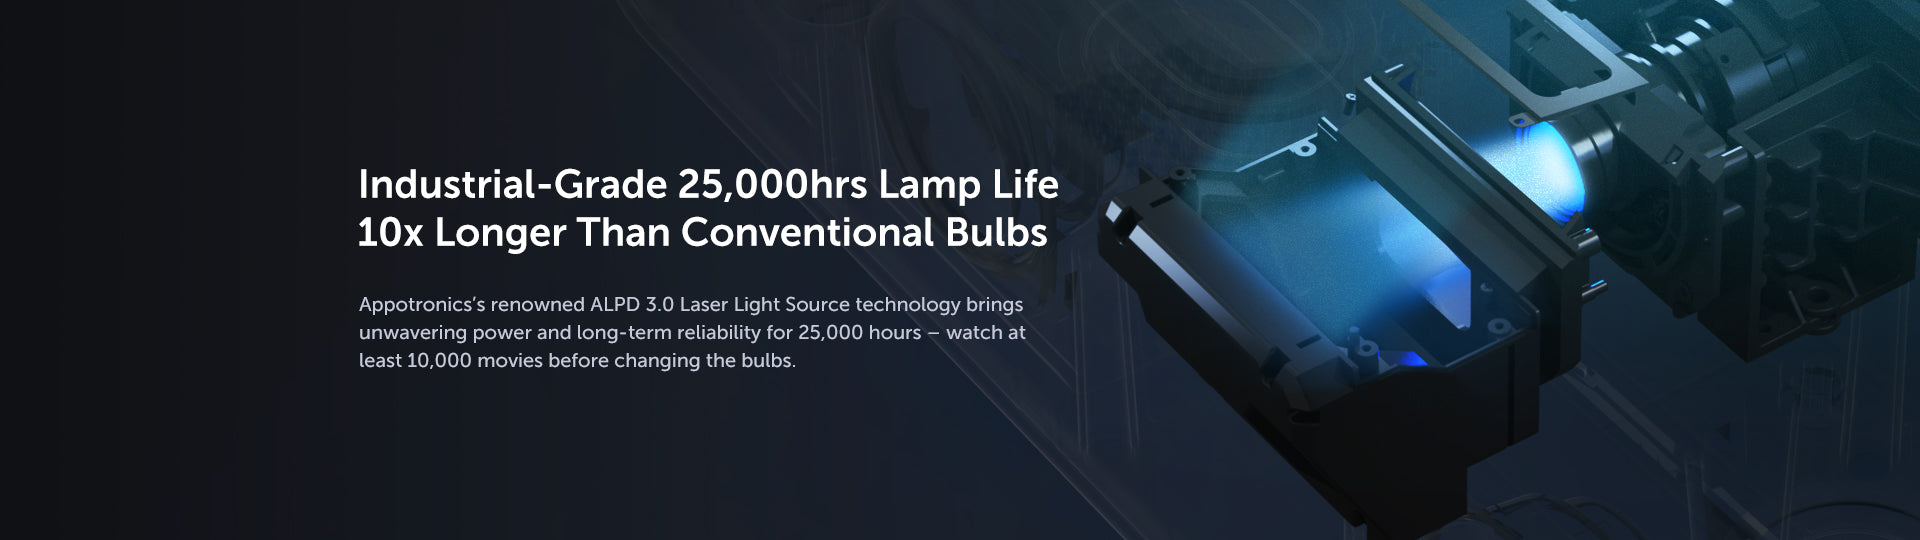 Ultra-Long Lamp Life